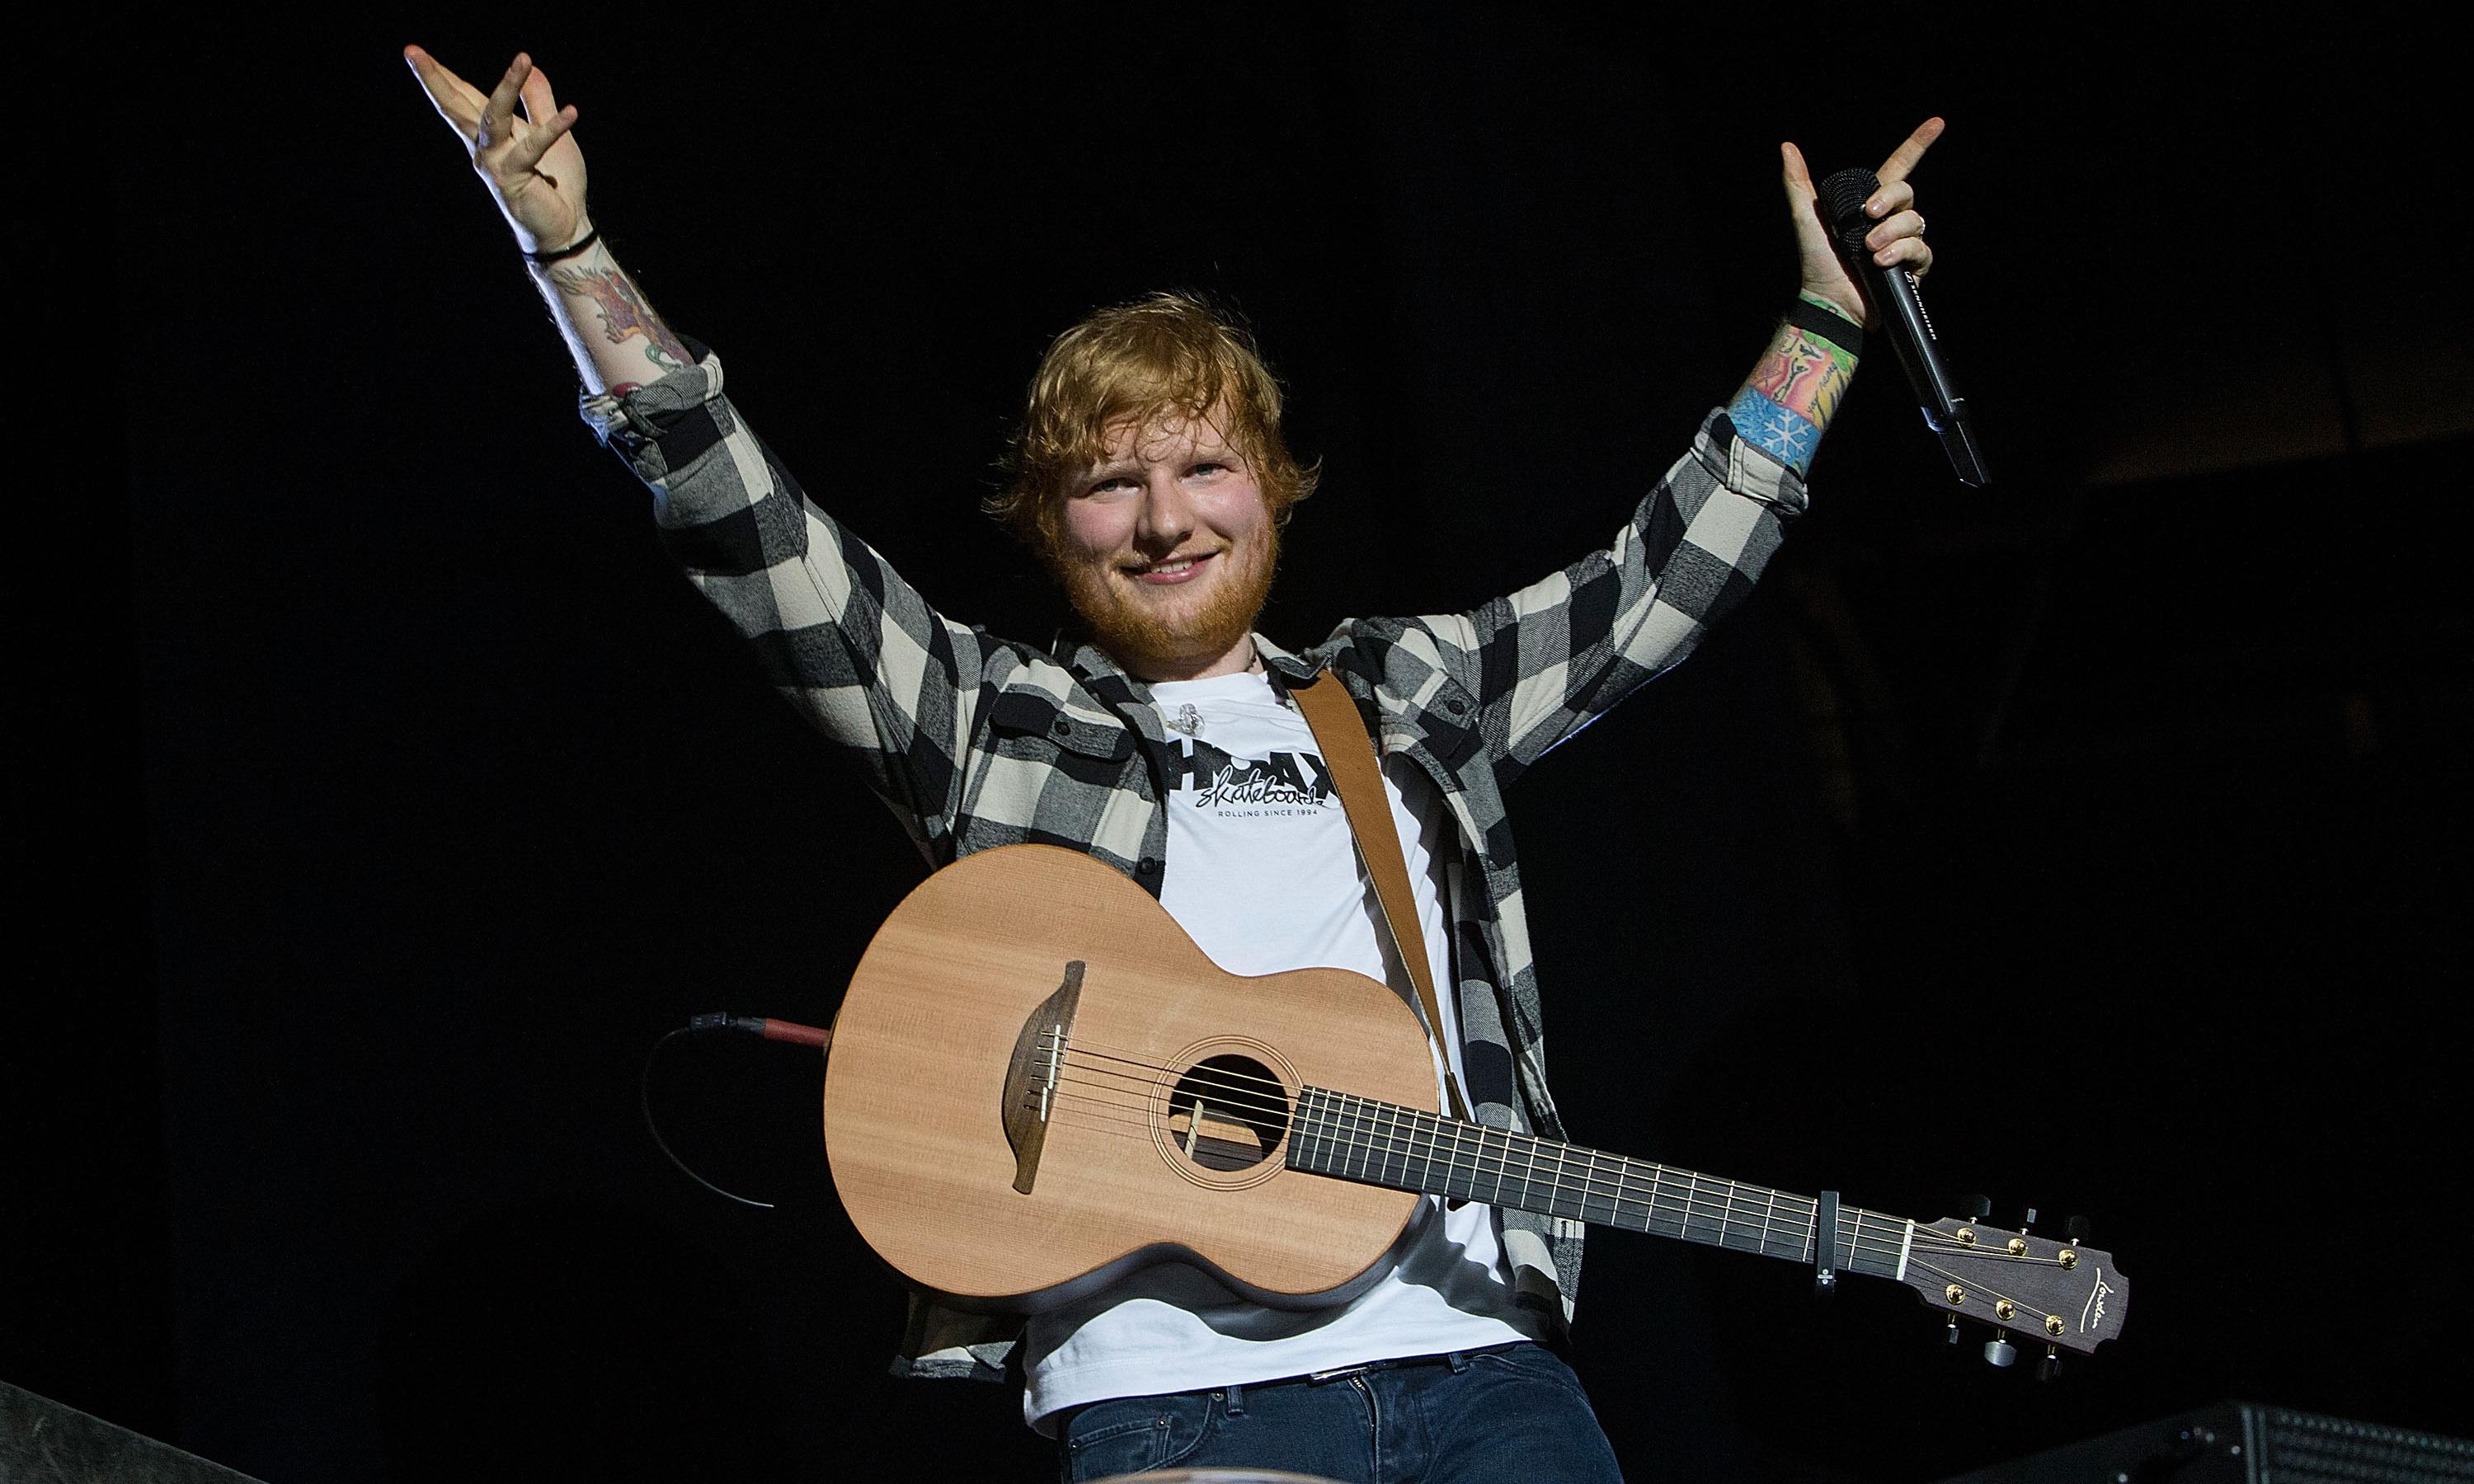 Ed Sheeran's battle to build his own pub, pond and private beach